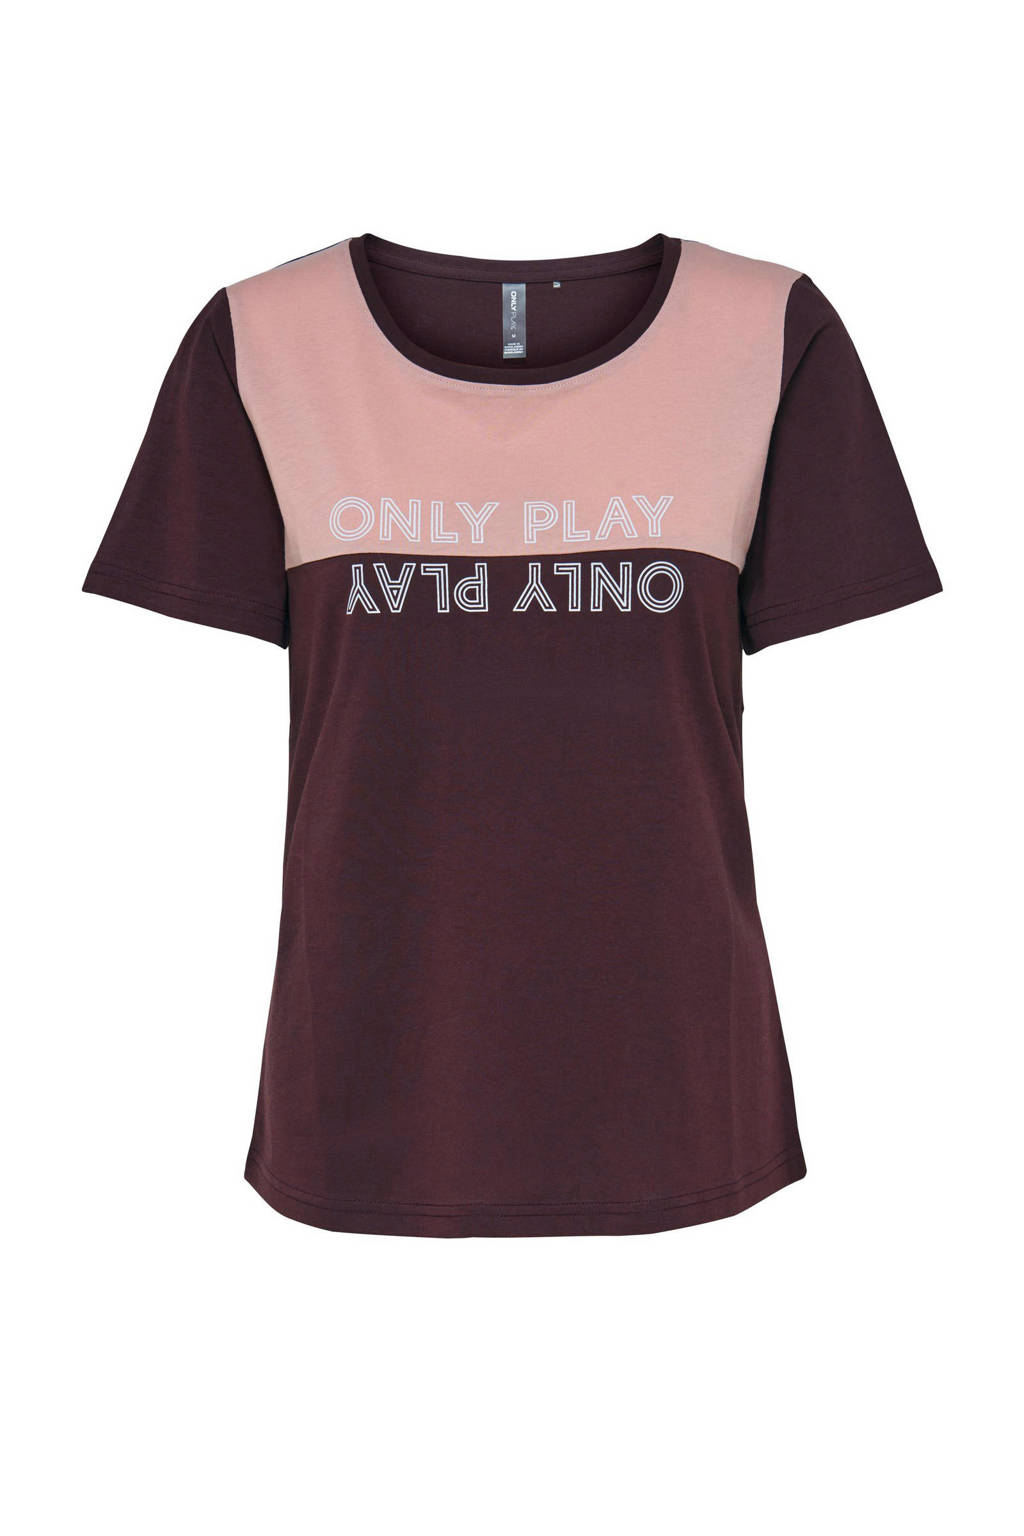 ONLY PLAY sport T-shirt Nia roodbruin/roze, Roodbruin/roze